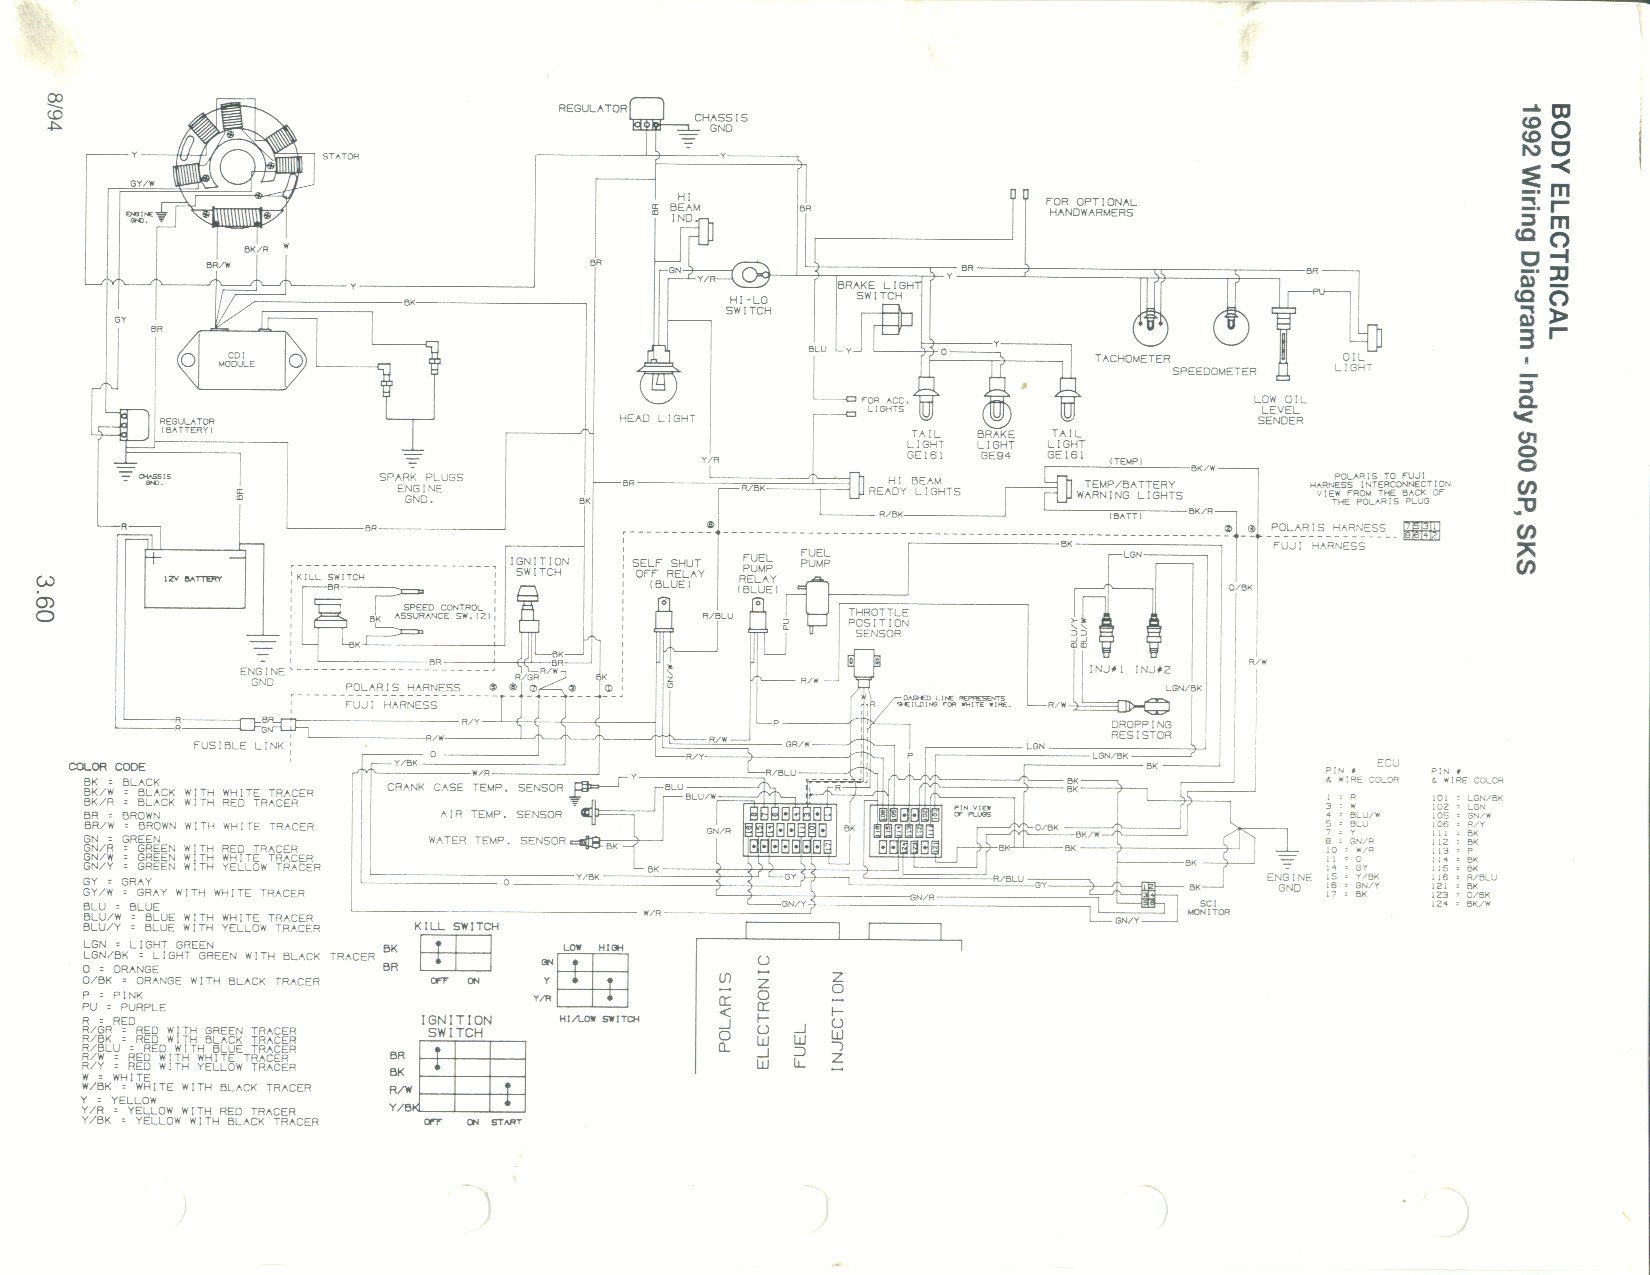 hight resolution of polaris indy 500 wiring diagram wiring diagram third level rh 3 7 15 jacobwinterstein com polaris 500 ho wiring diagram 2008 polaris sportsman 500 wiring